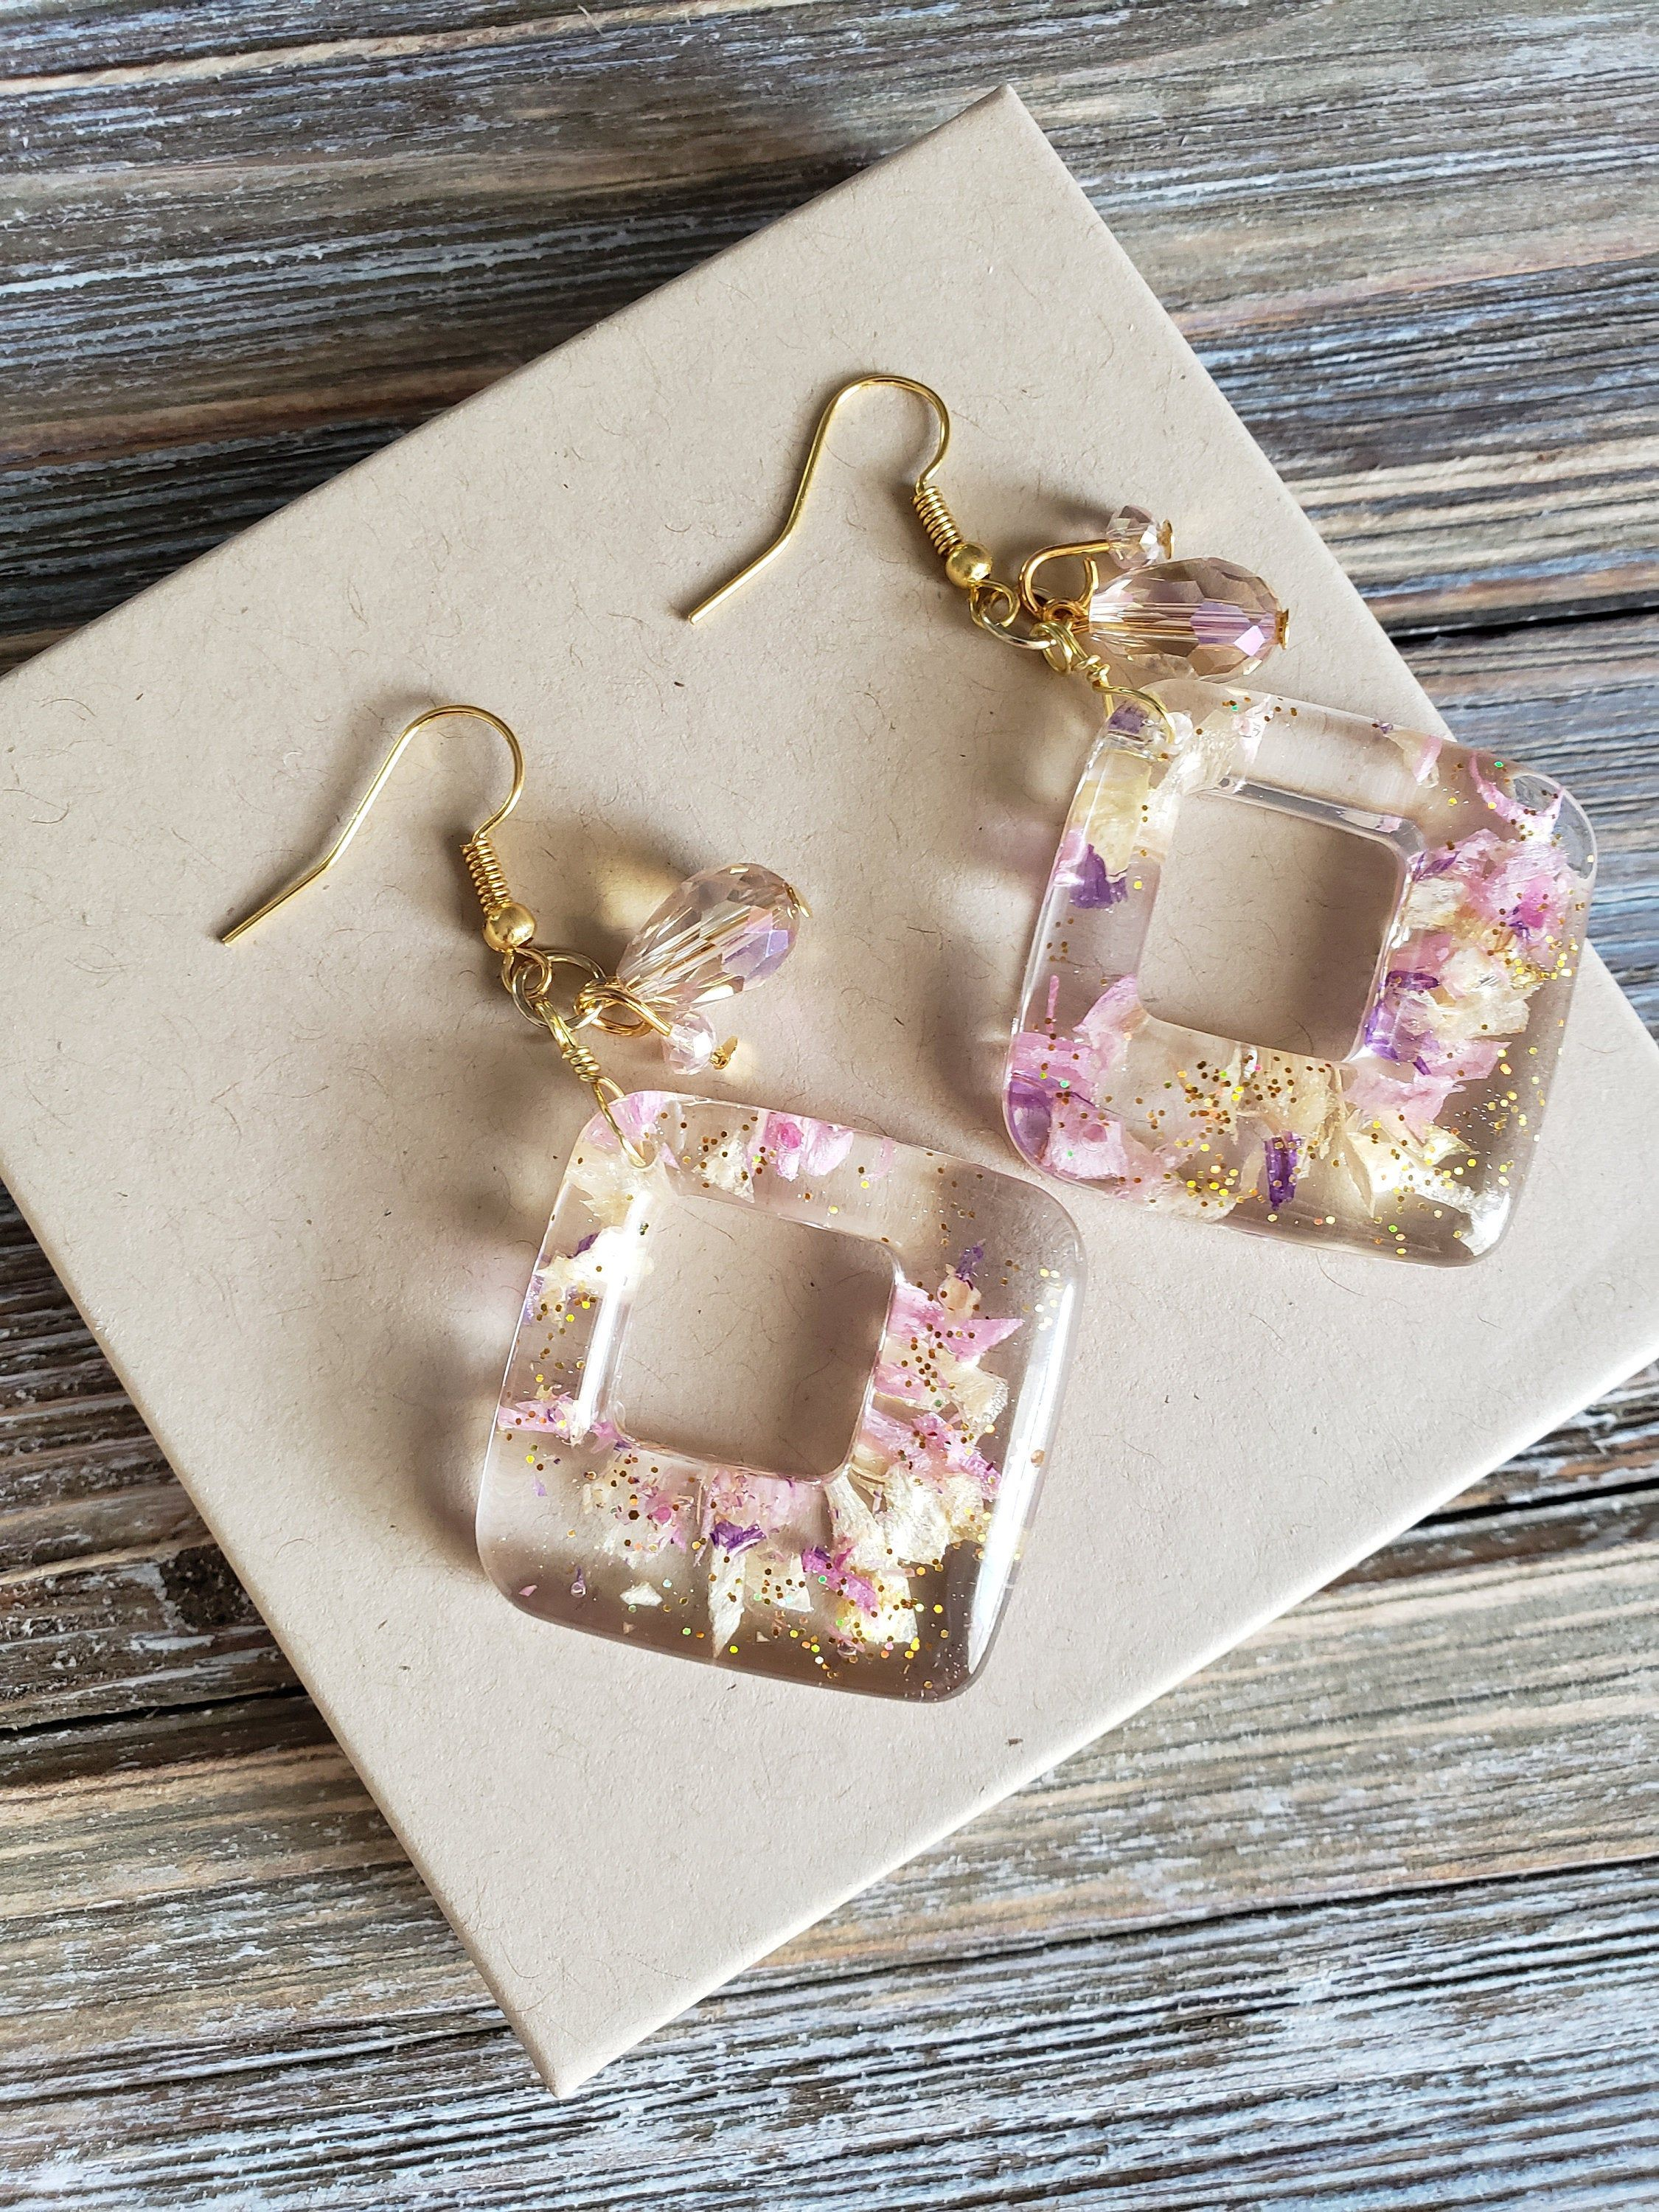 Hand Painted Earrings Square Dangles Resin Earrings Pink Earrings Pink Dangles Hand Painted Jewellery Pink Jewellery